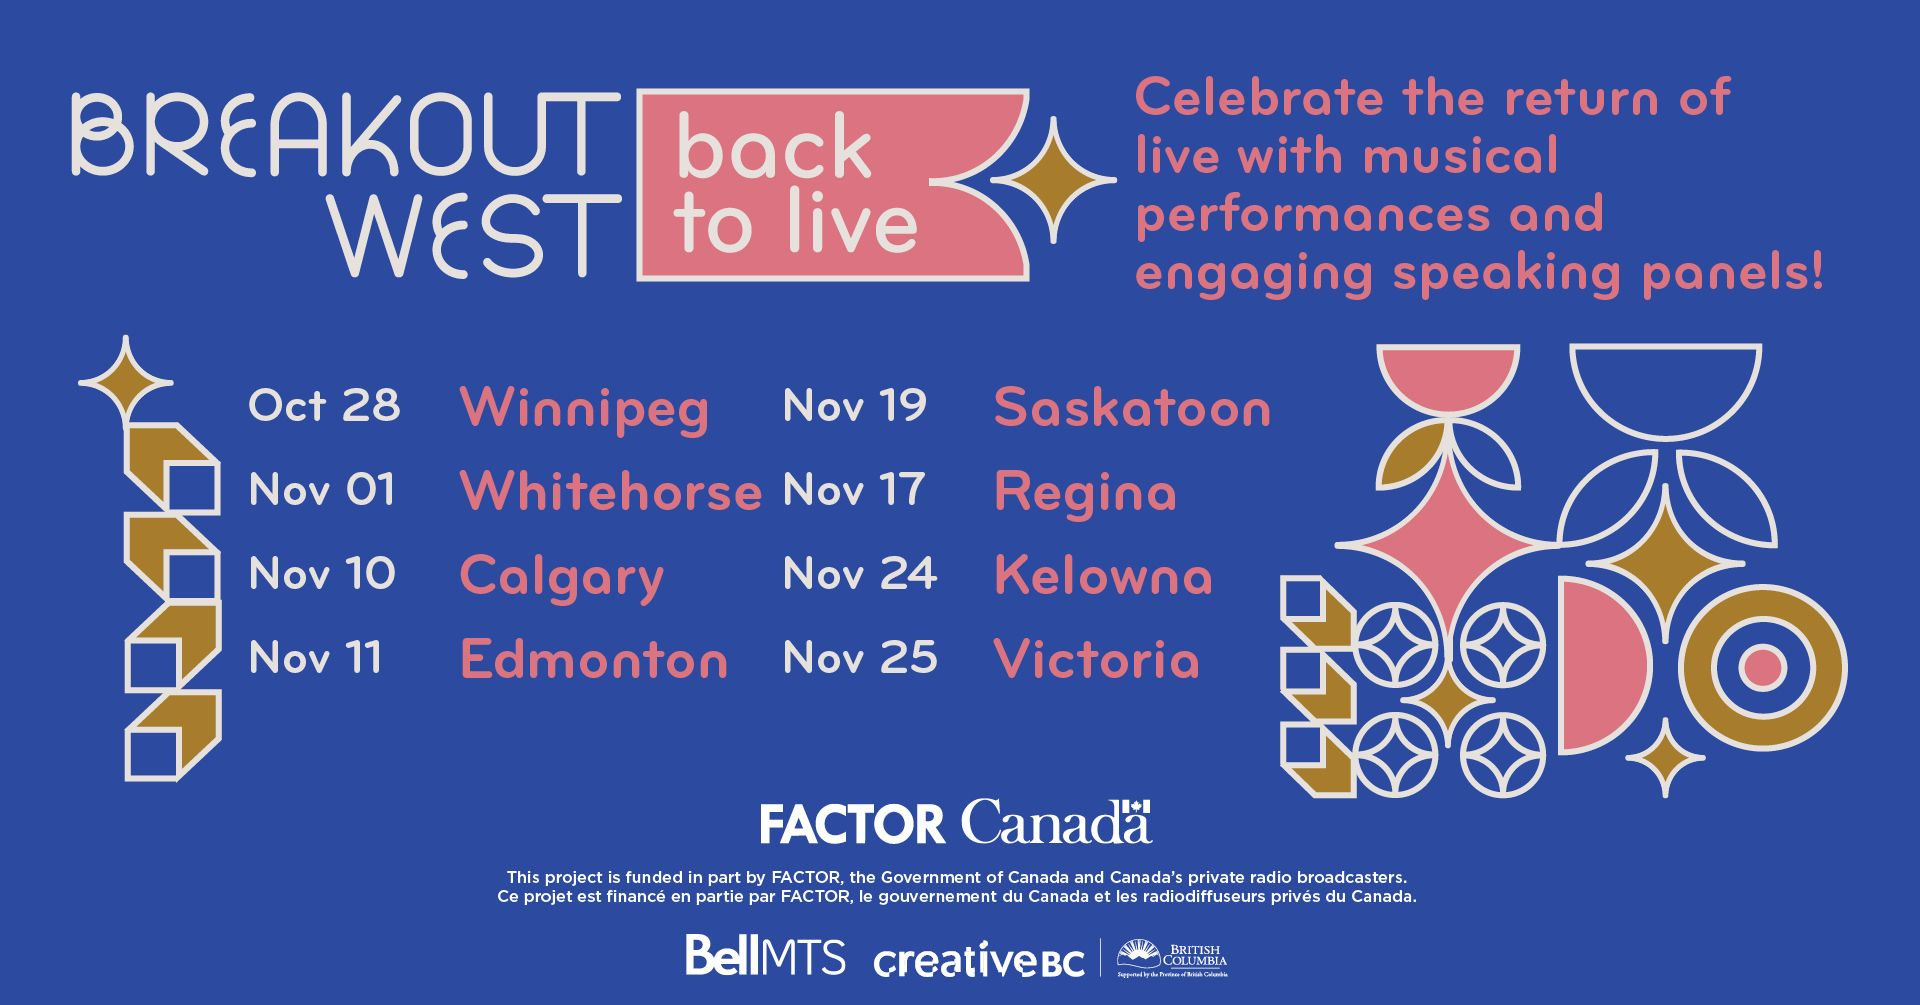 BreakOut West - Back to Live Announcement